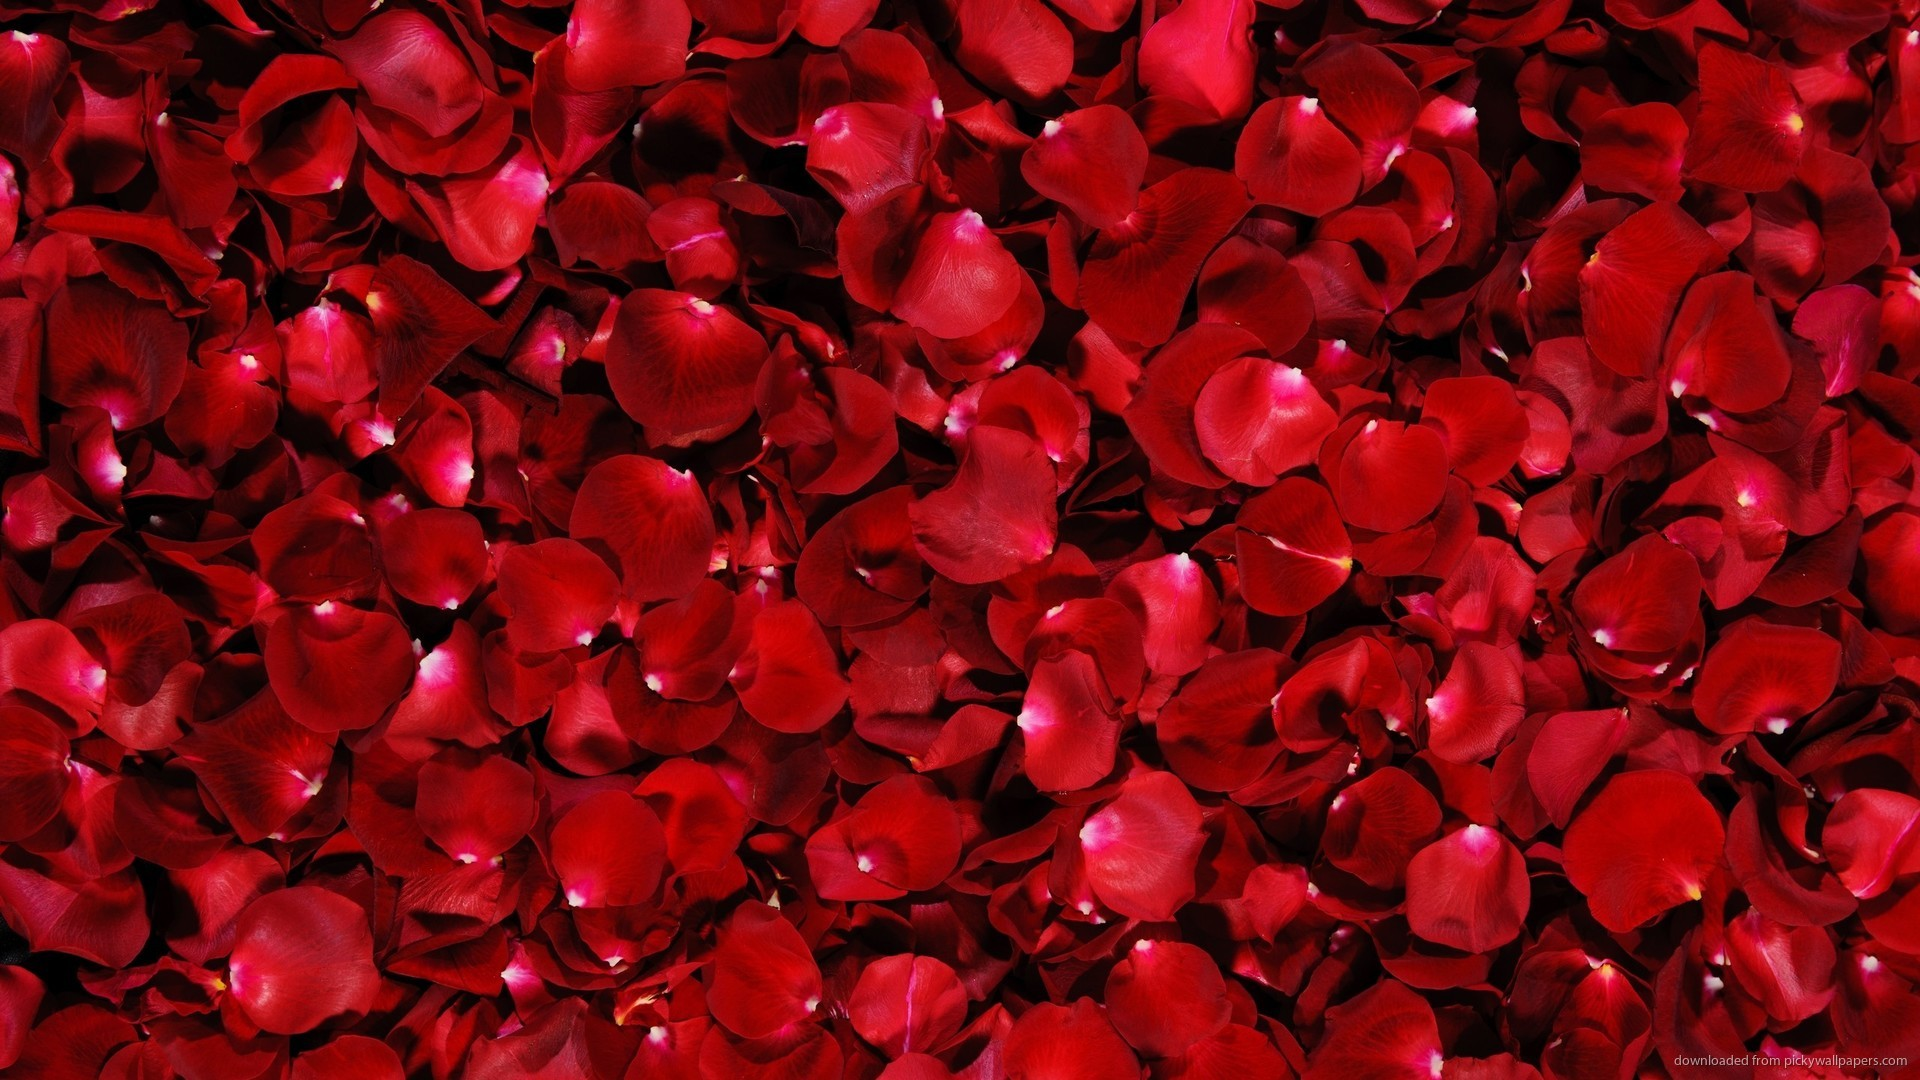 1920x1080 Red Rose Flower Petals Wallpaper Background picture